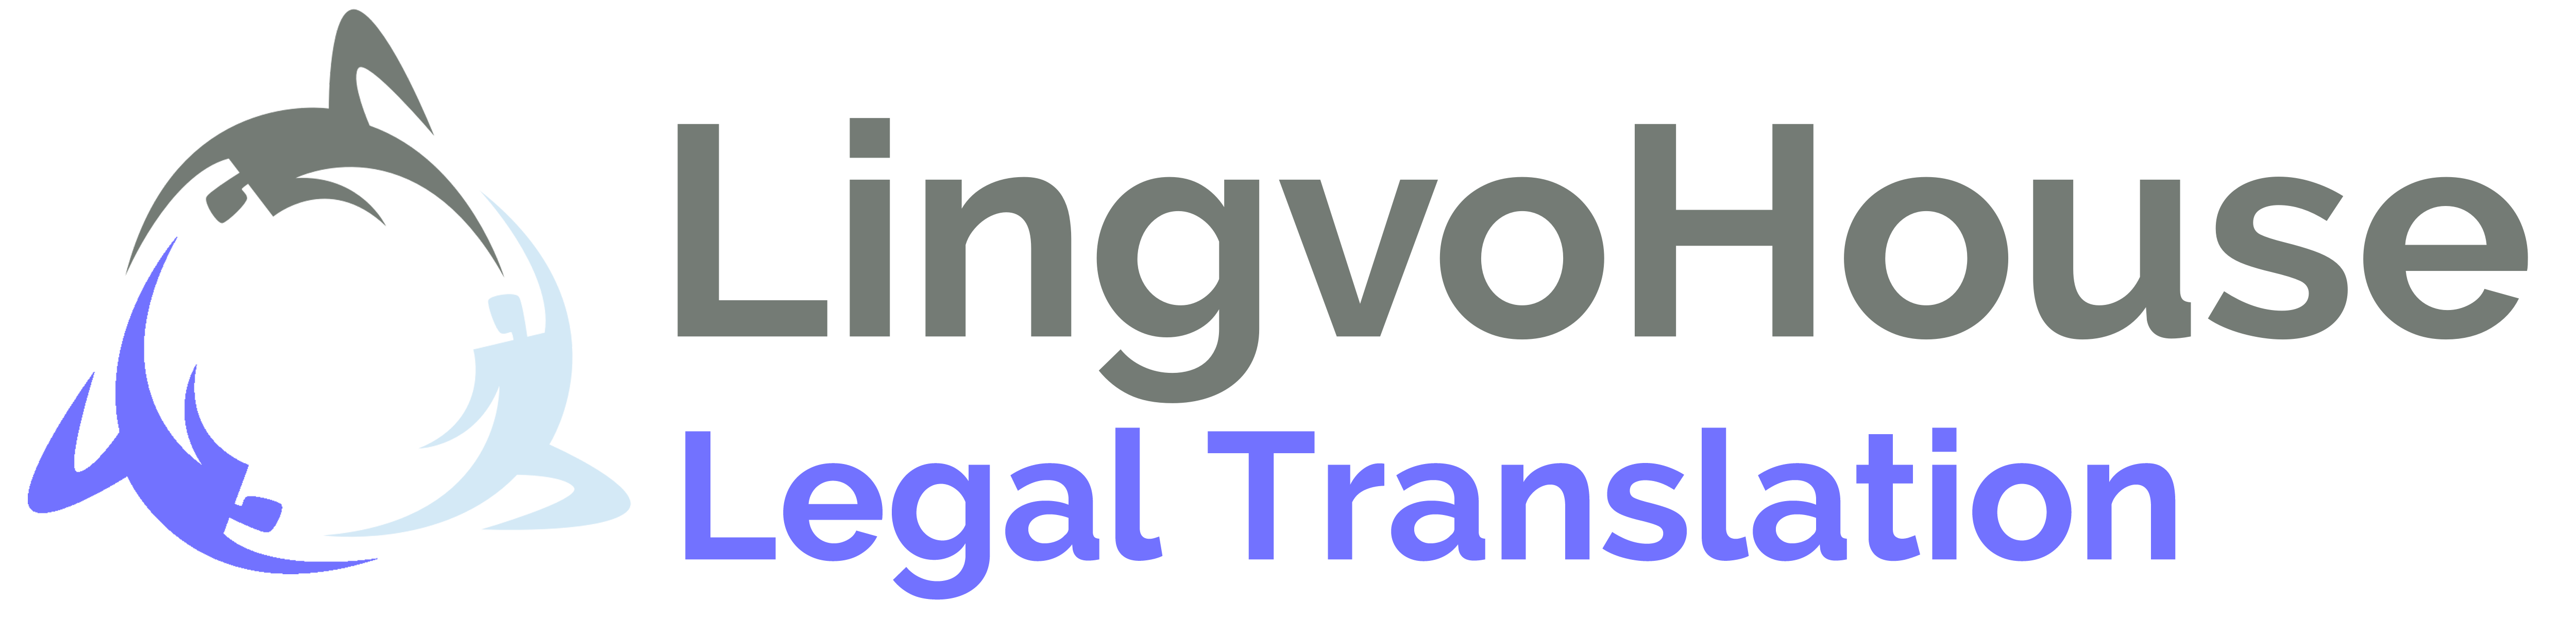 Legal Translation Agency